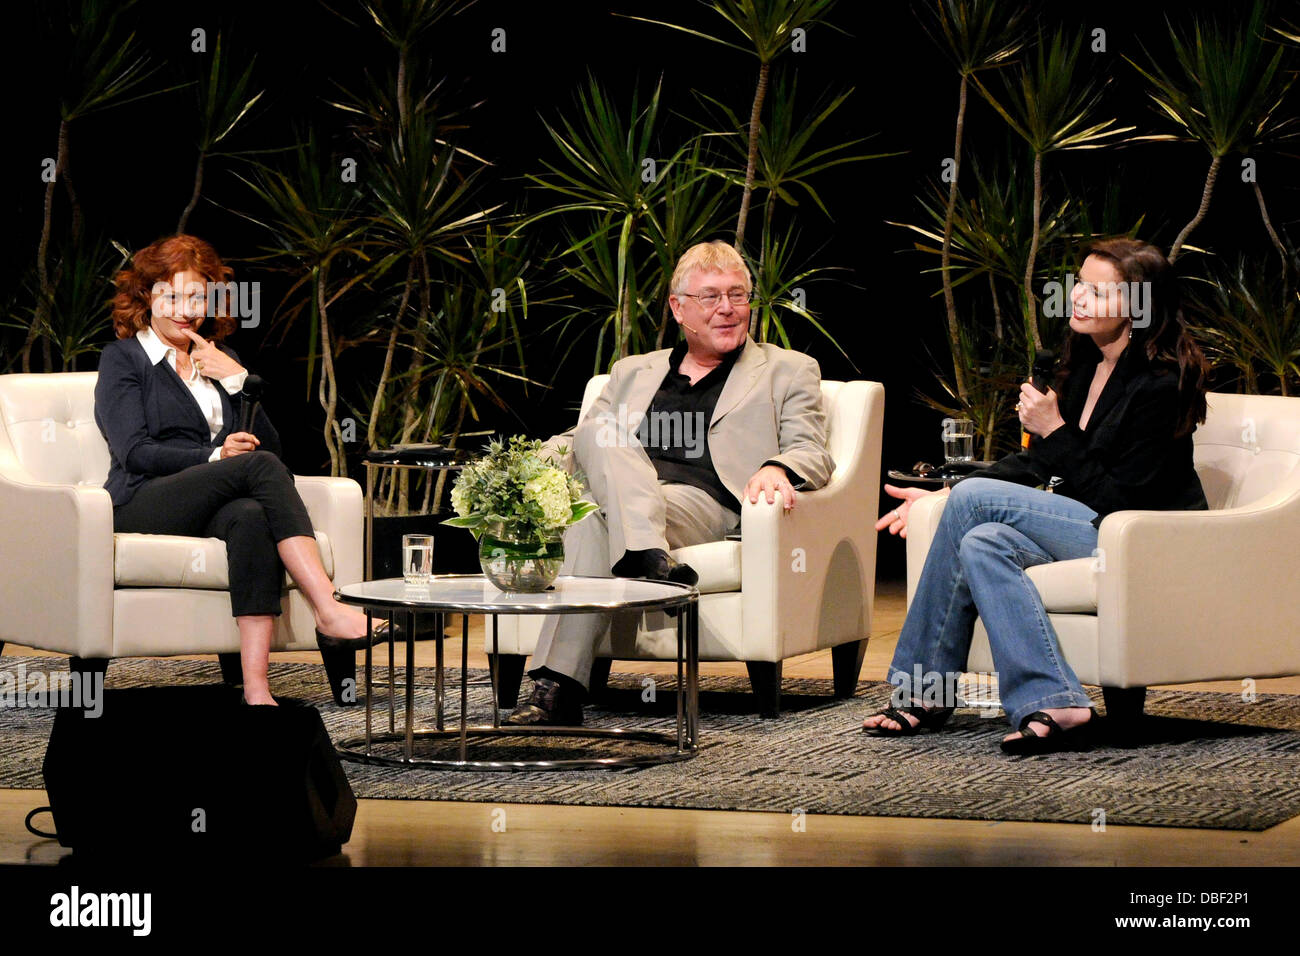 Susan Sarandon, Richard Ouzounian, and Geena Davis  'Thelma & Louise' The 20th Anniversary Homecoming - Stock Image